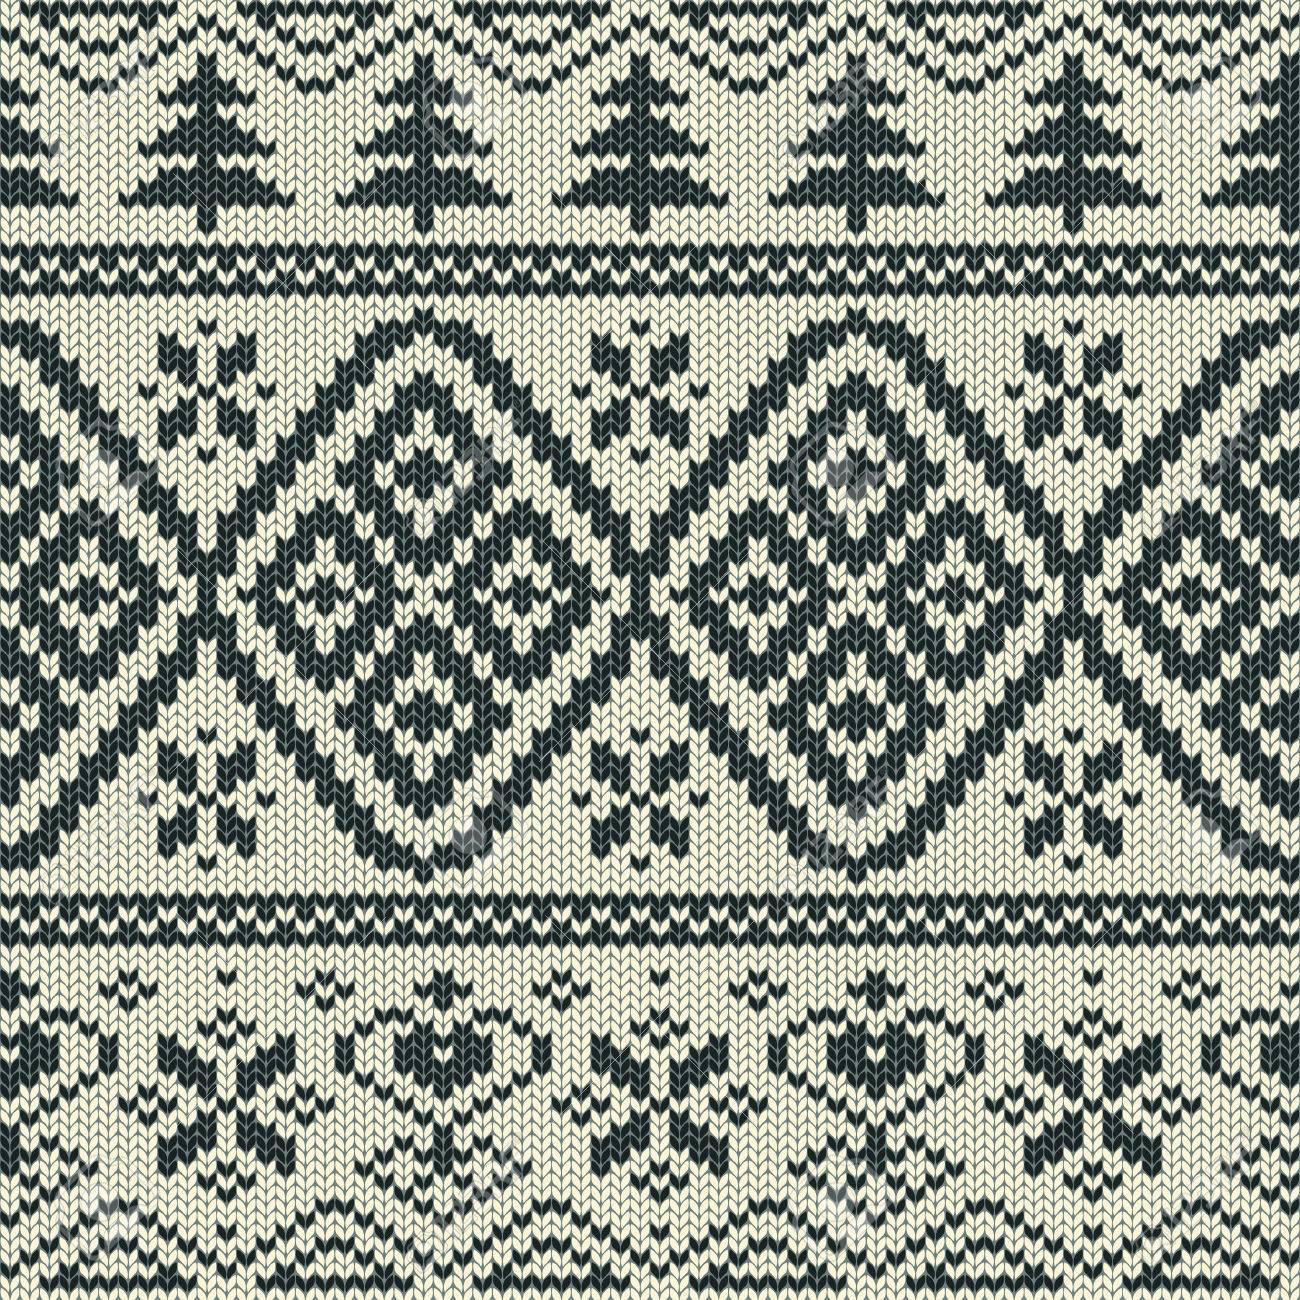 Scandinavian Knitted Seamless Pattern With Snowflakes And Trees ...